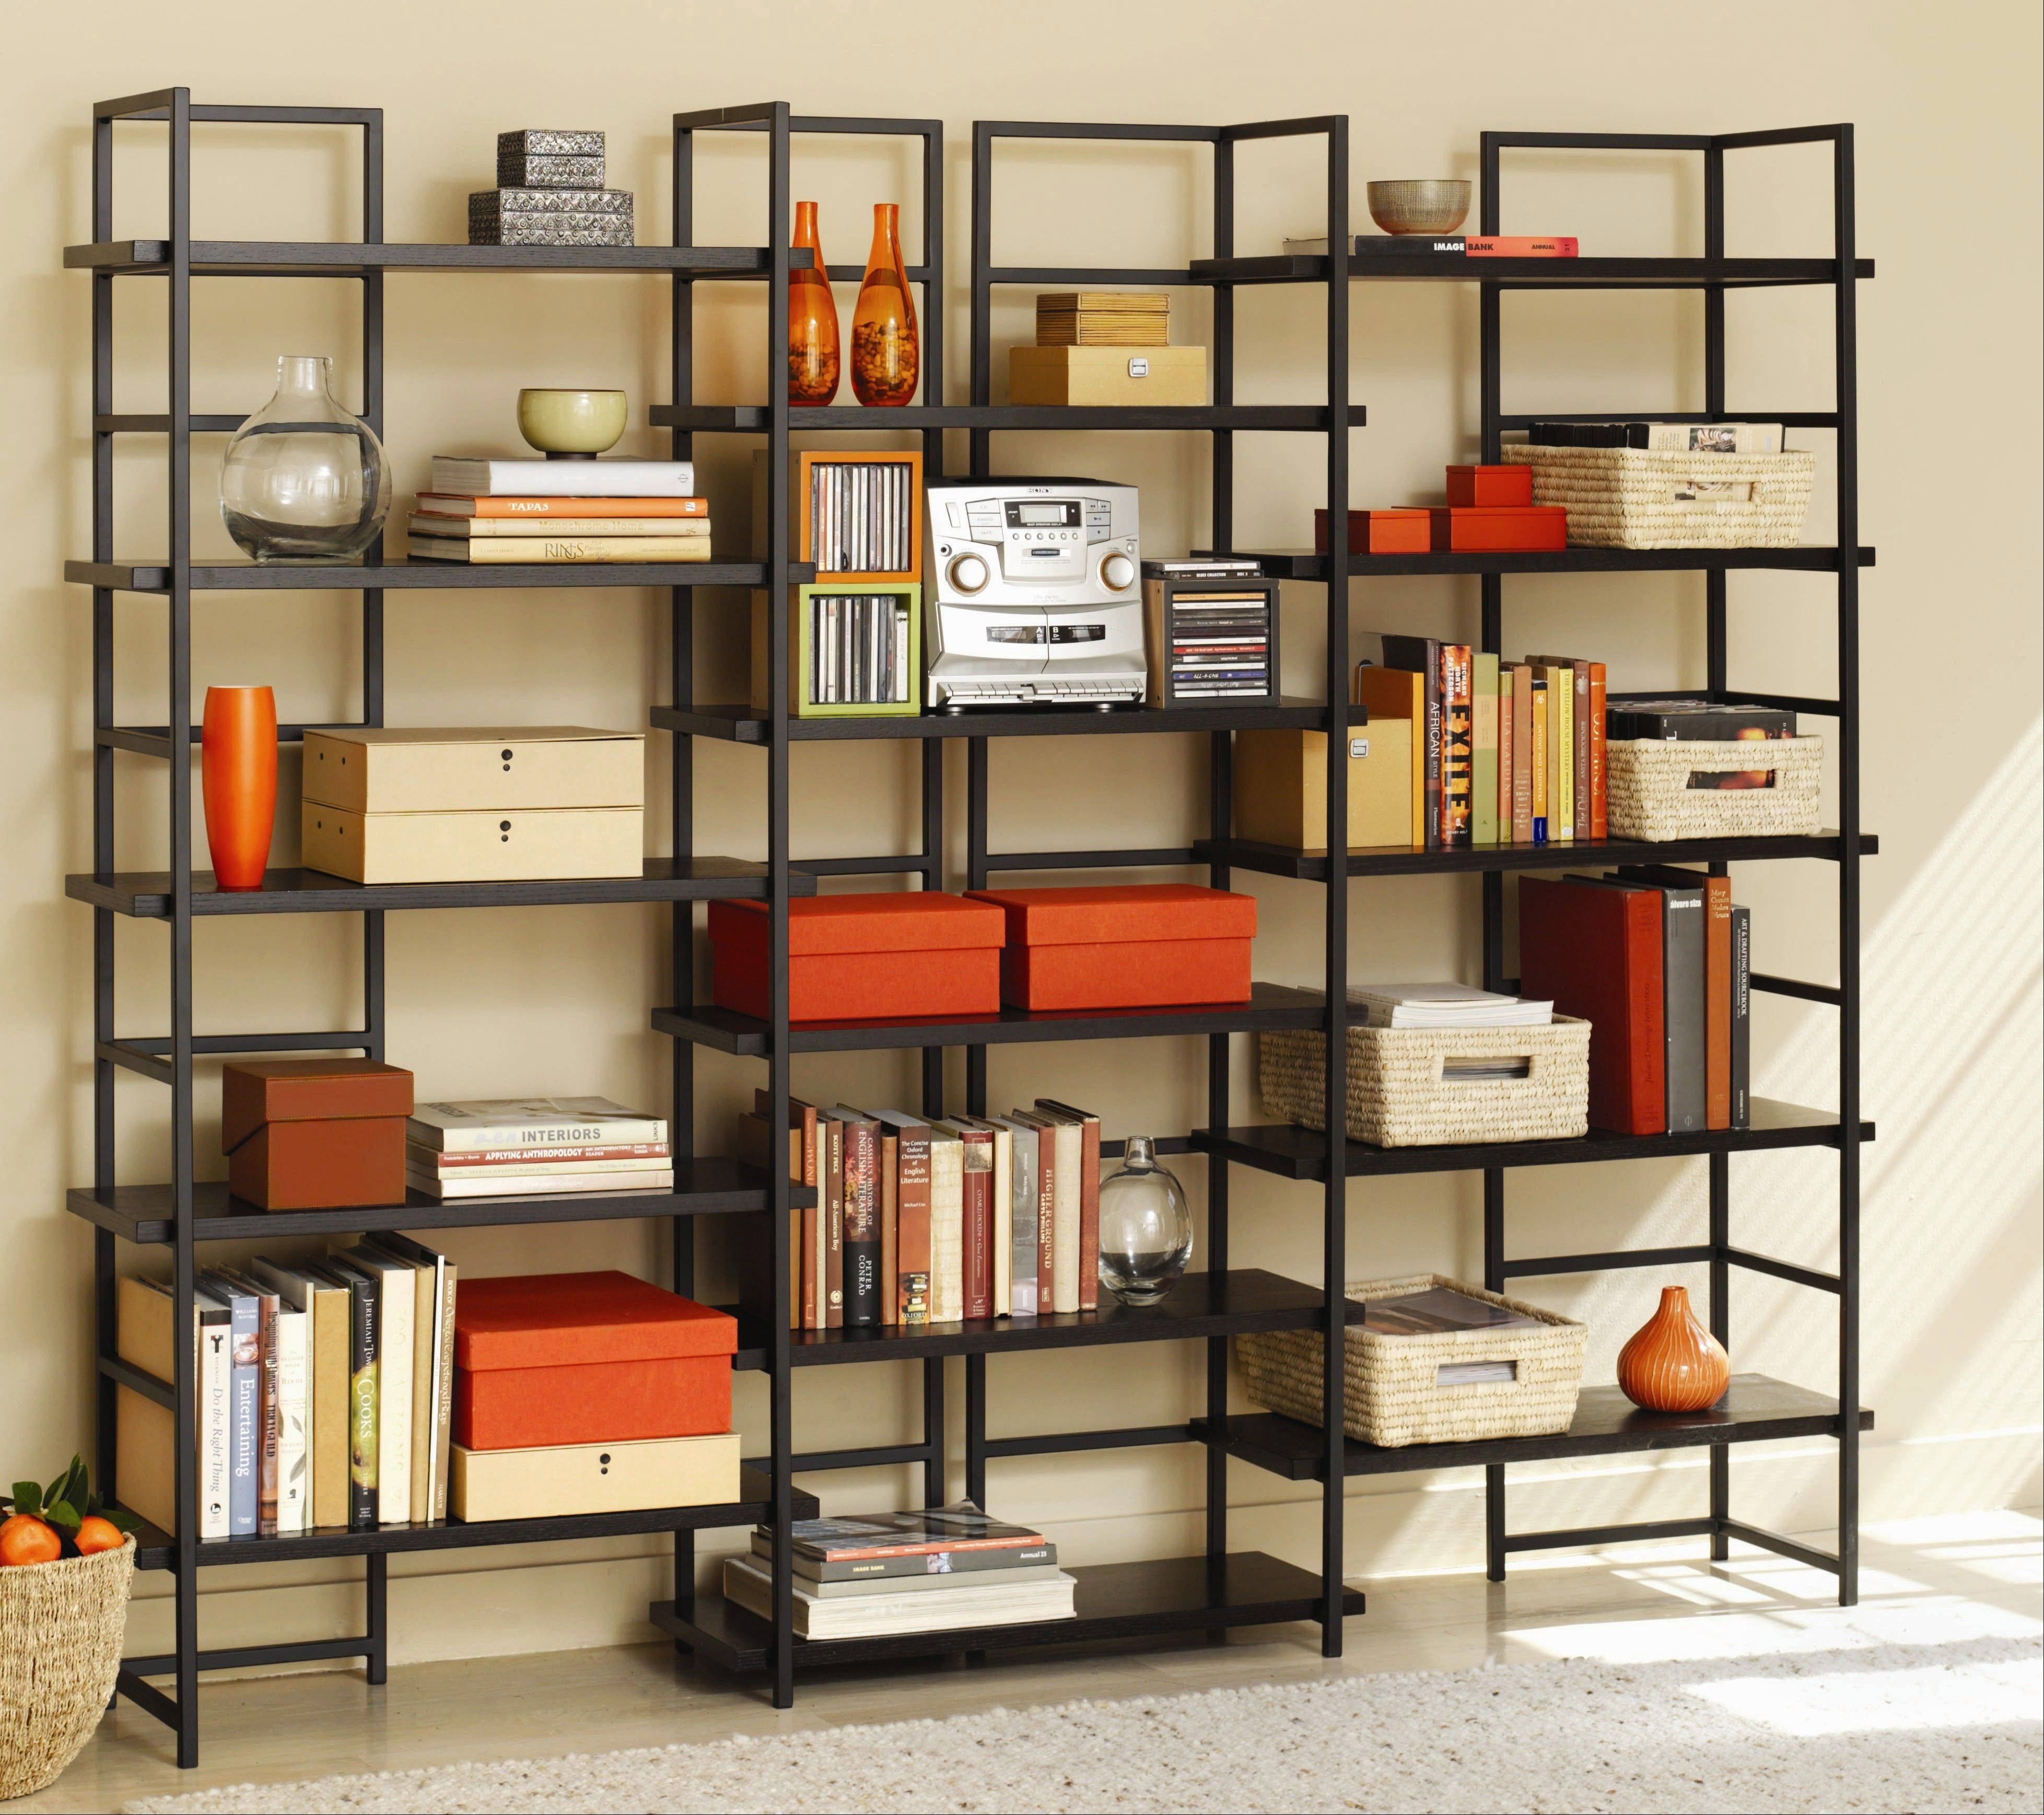 An open-backed modern bookcase can be used to divide rooms or set the perimeter of a library-focused space. Contemporary home libraries utilize room for books or artwork that speak to the aesthetic and spirit of the space.